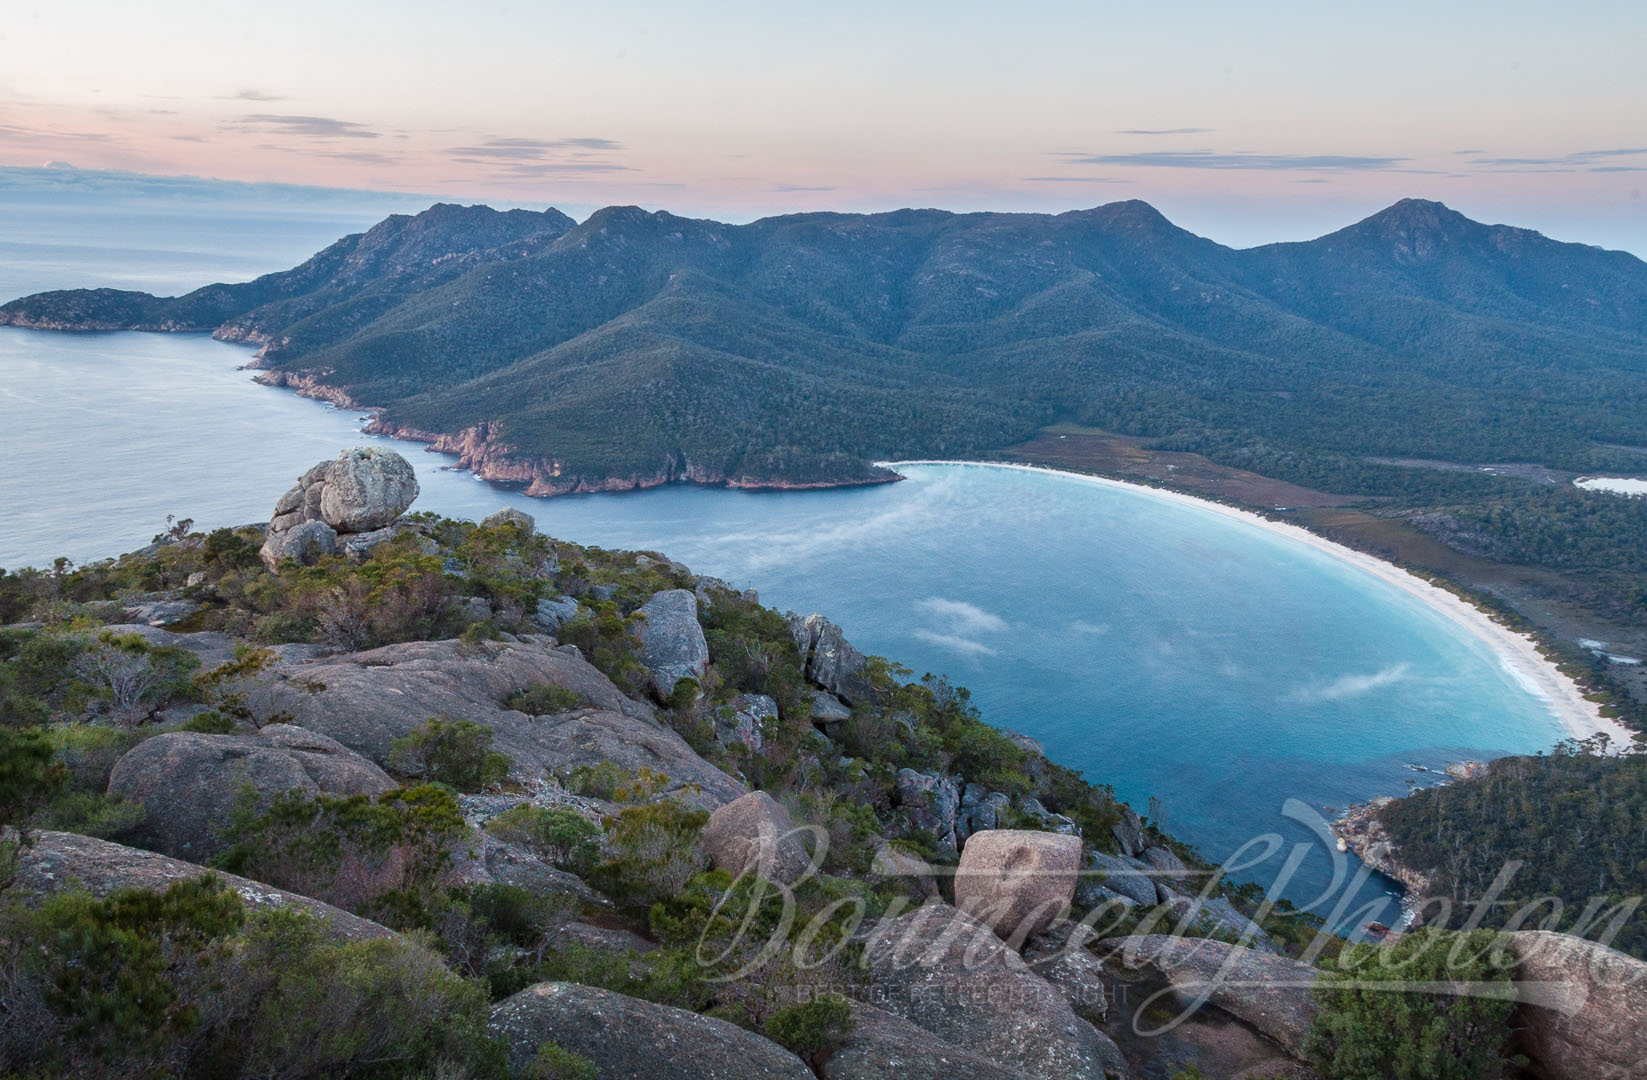 Sunrise views from the top of Mount Amos over the Wineglass Bay